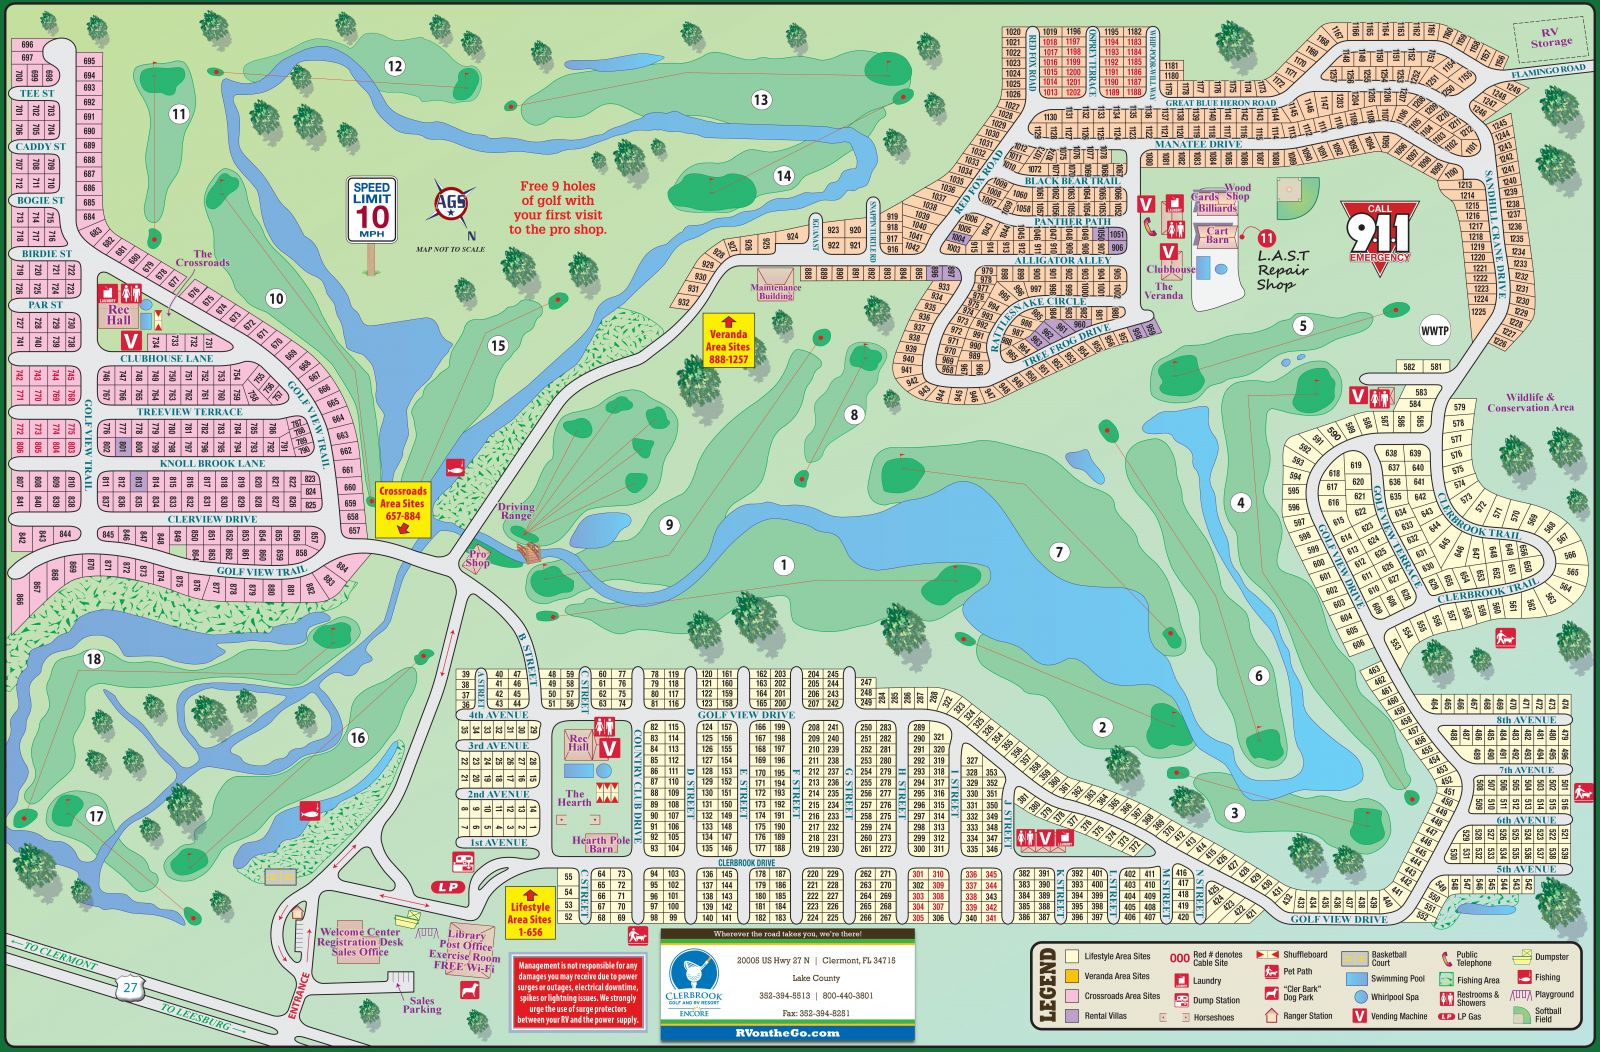 A map of the Clerbrook RV resort in Orlando Florida